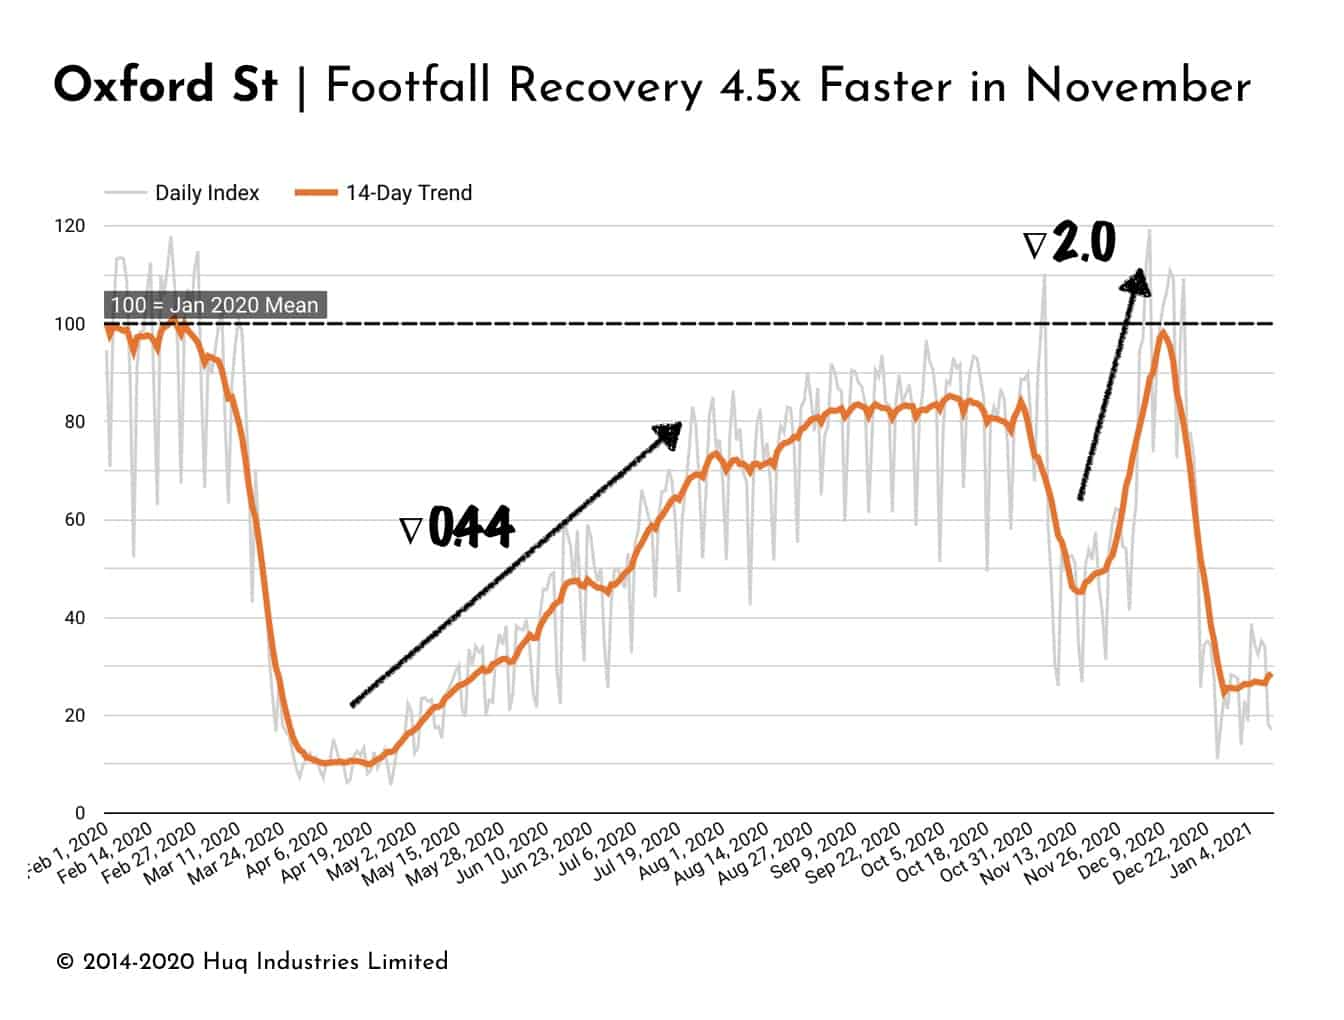 Retail recovery is getting faster